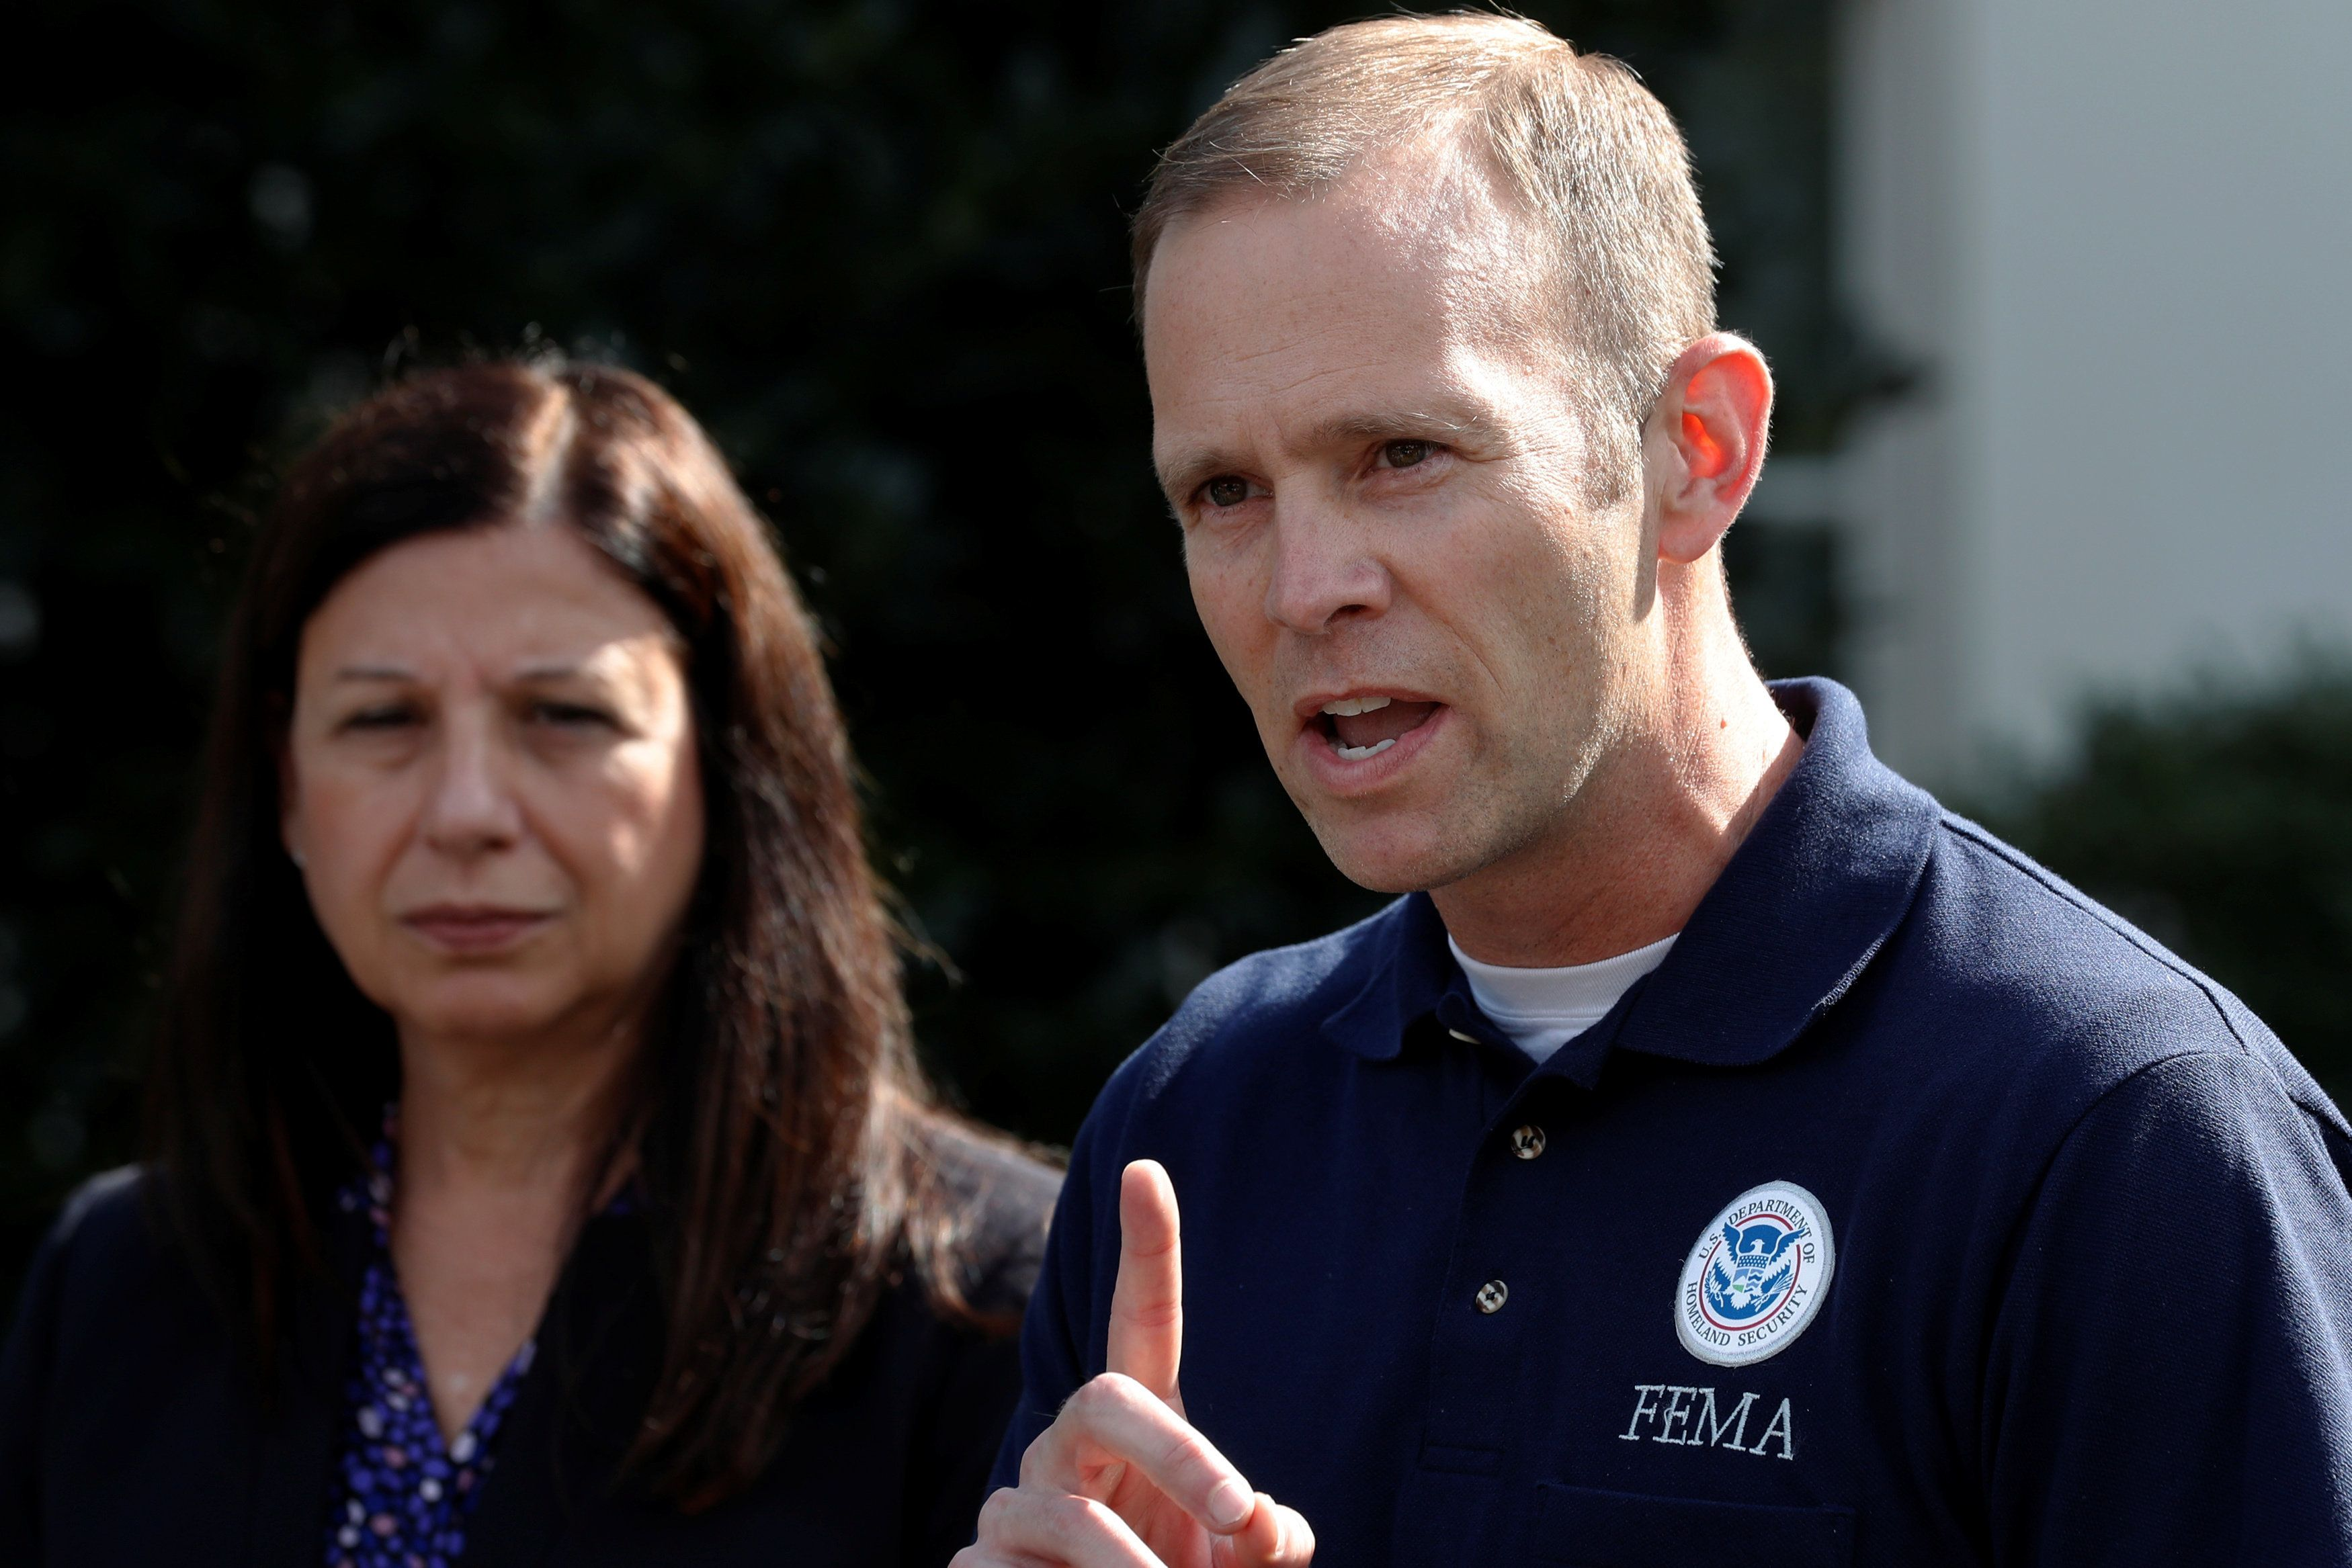 FEMA Administrator Brock Longmisused government vehicles and staff on more than 40 occasions, according to a Department